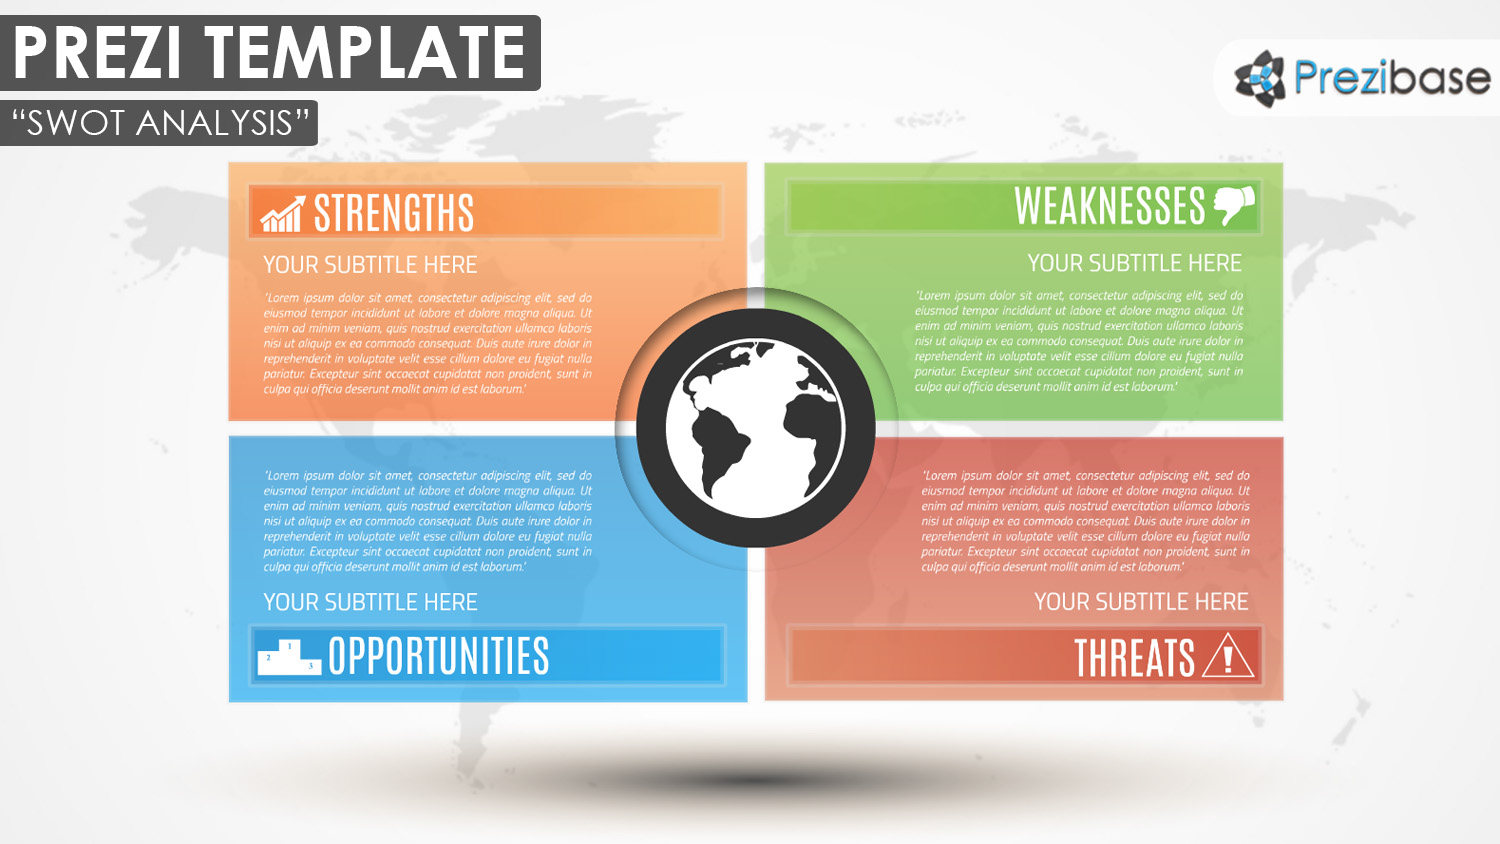 SWOT Analysis Prezi Template – Swot Analysis Templates